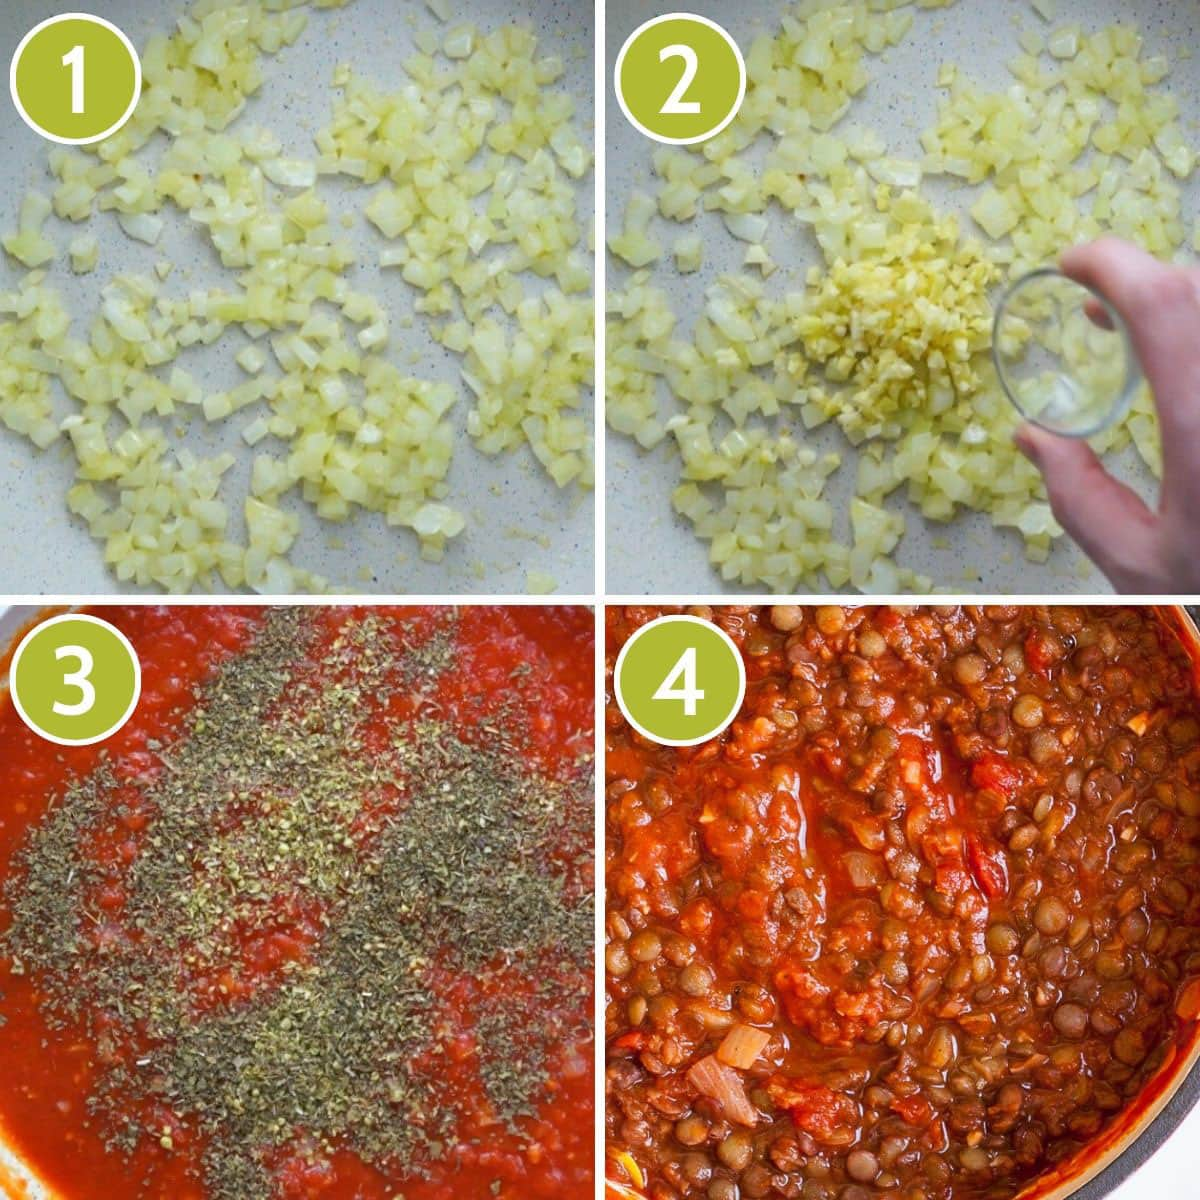 Step photos to make lentil bolognese sauce for lasagna